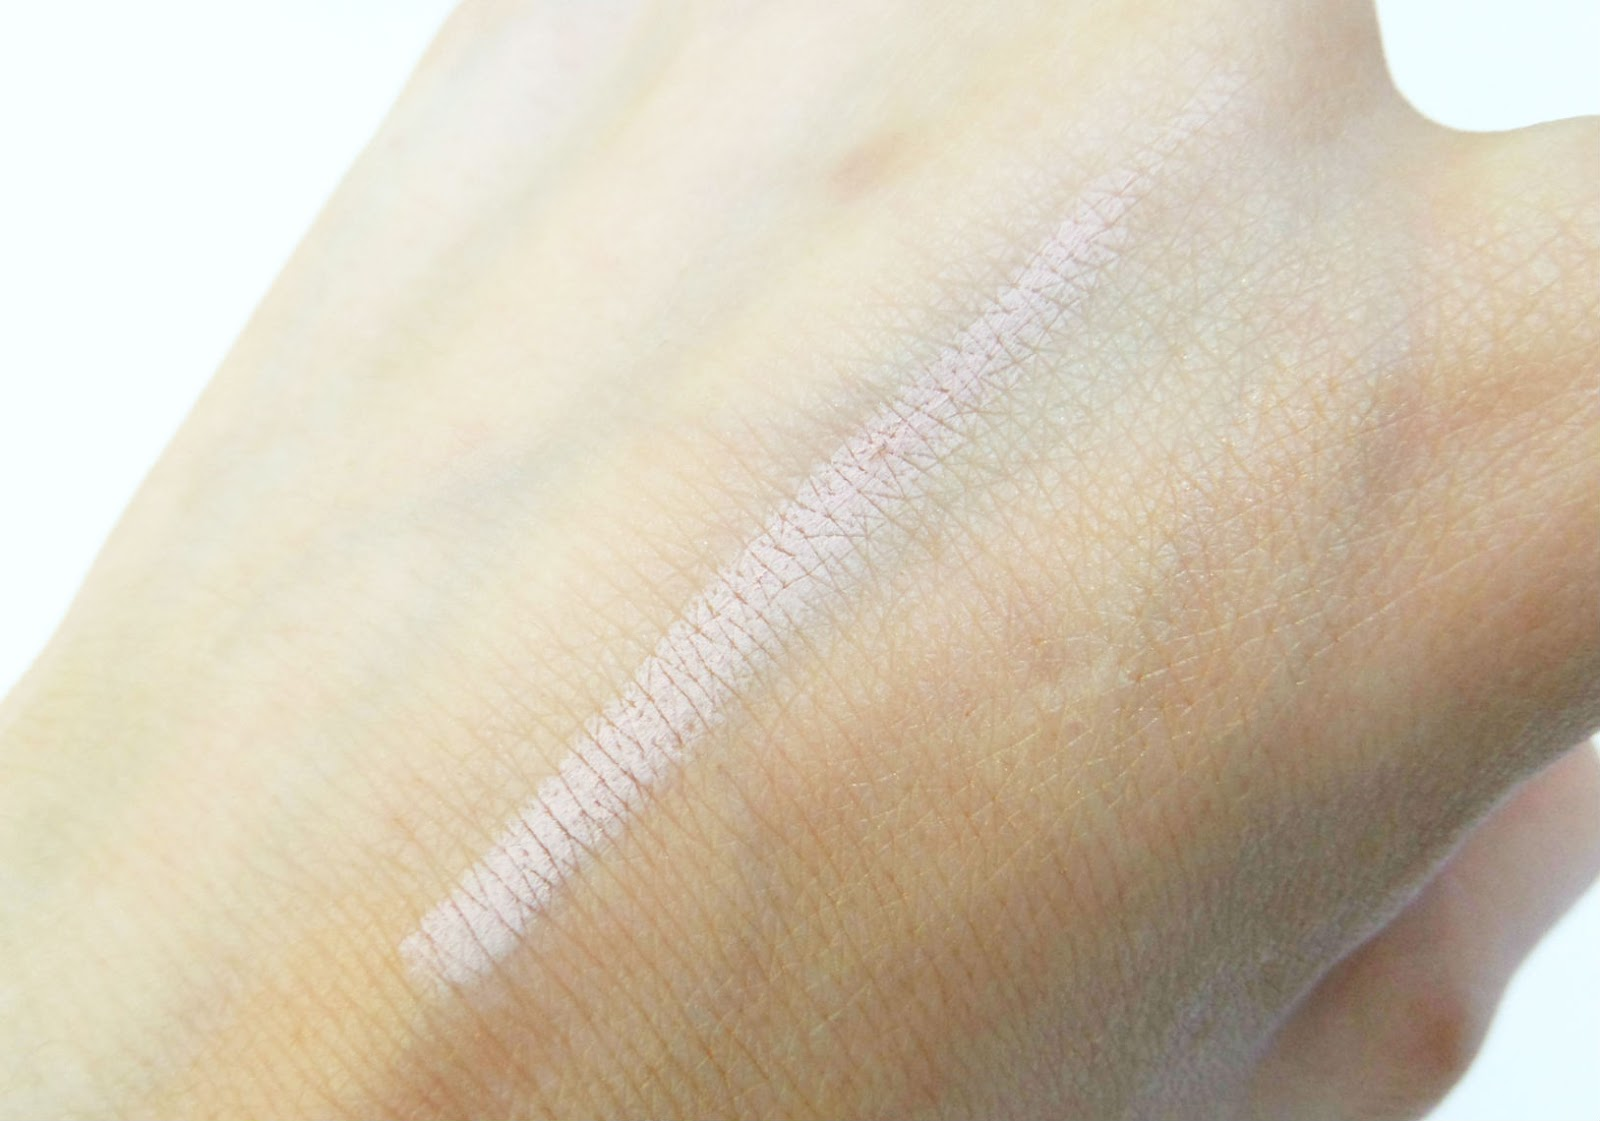 Benefit Cosmetics High Brow Pencil the swatch